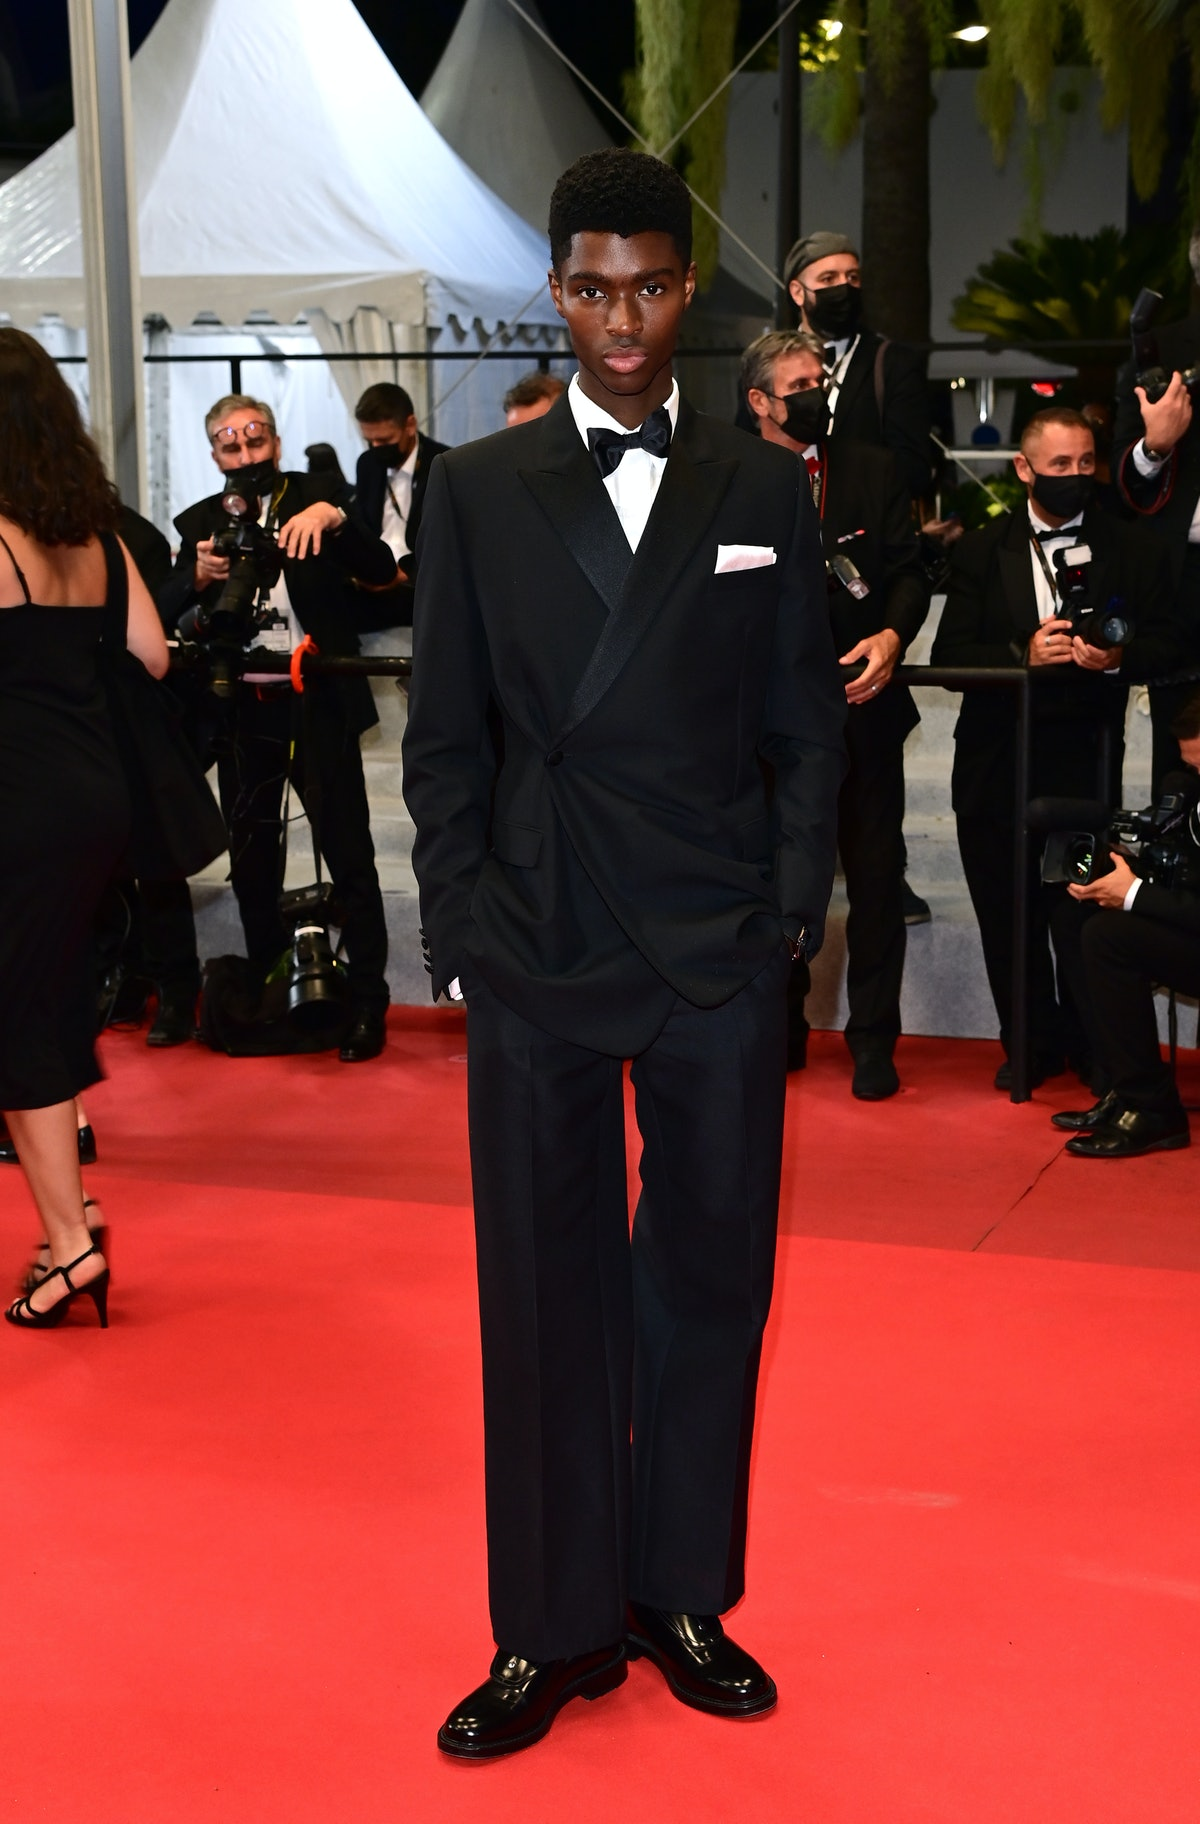 """CANNES, FRANCE - JULY 15: Alton Mason attends the """"Haut Et Fort (Casablanca Beats)"""" screening during the 74th annual Cannes Film Festival on July 15, 2021 in Cannes, France. (Photo by Daniele Venturelli/WireImage)"""